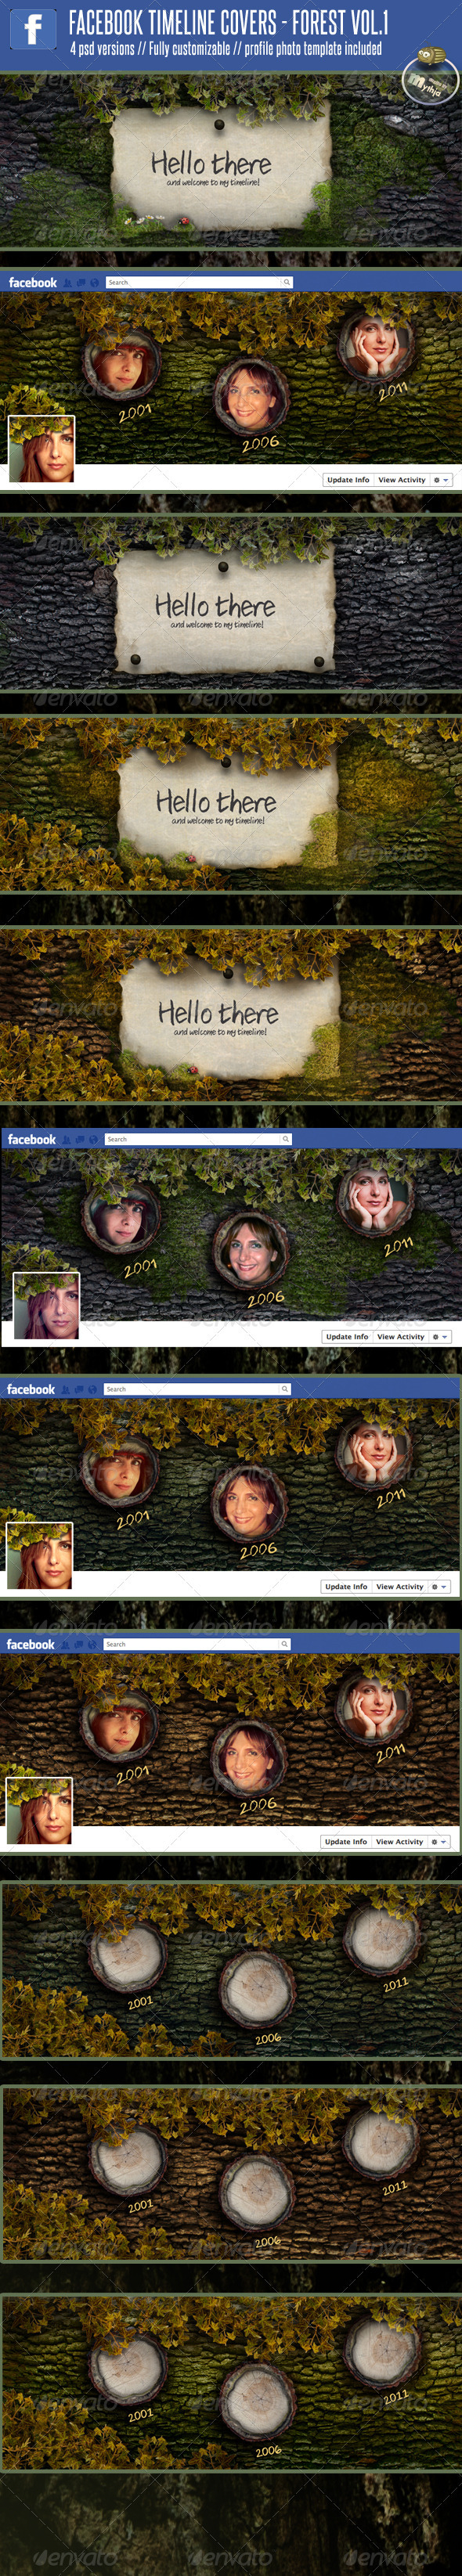 GraphicRiver 4 Facebook Timeline Covers Forest vol 1 1610995